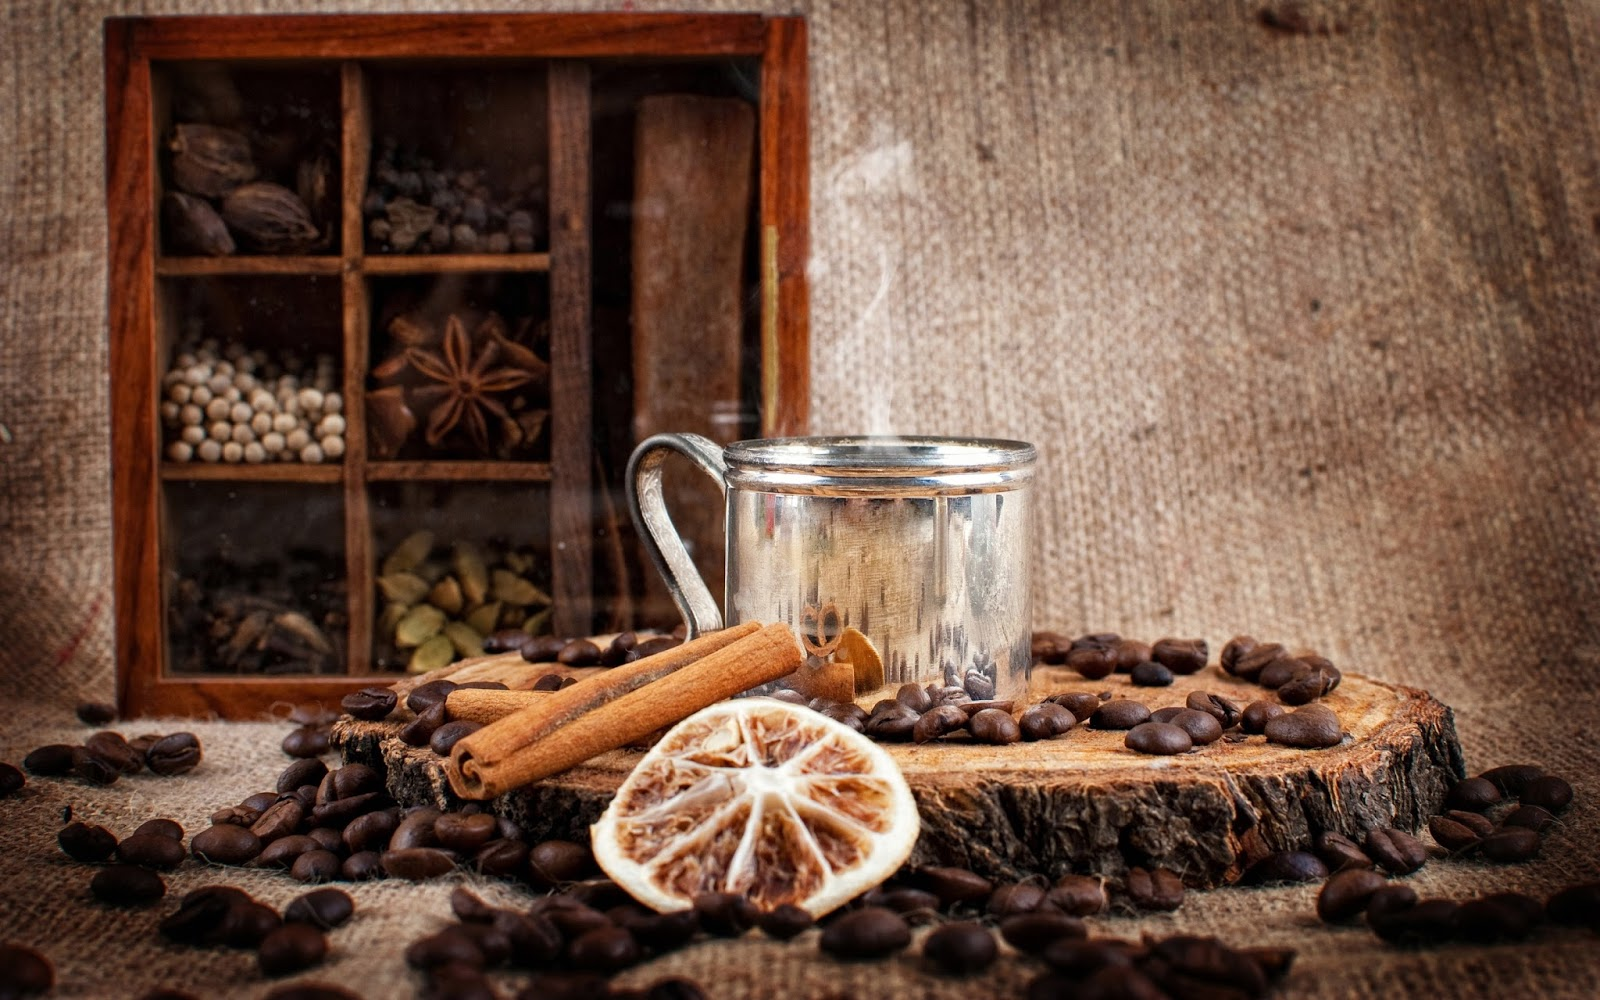 photo coffee-cinnamon-cabinet_zps5tq5qeuo.jpg